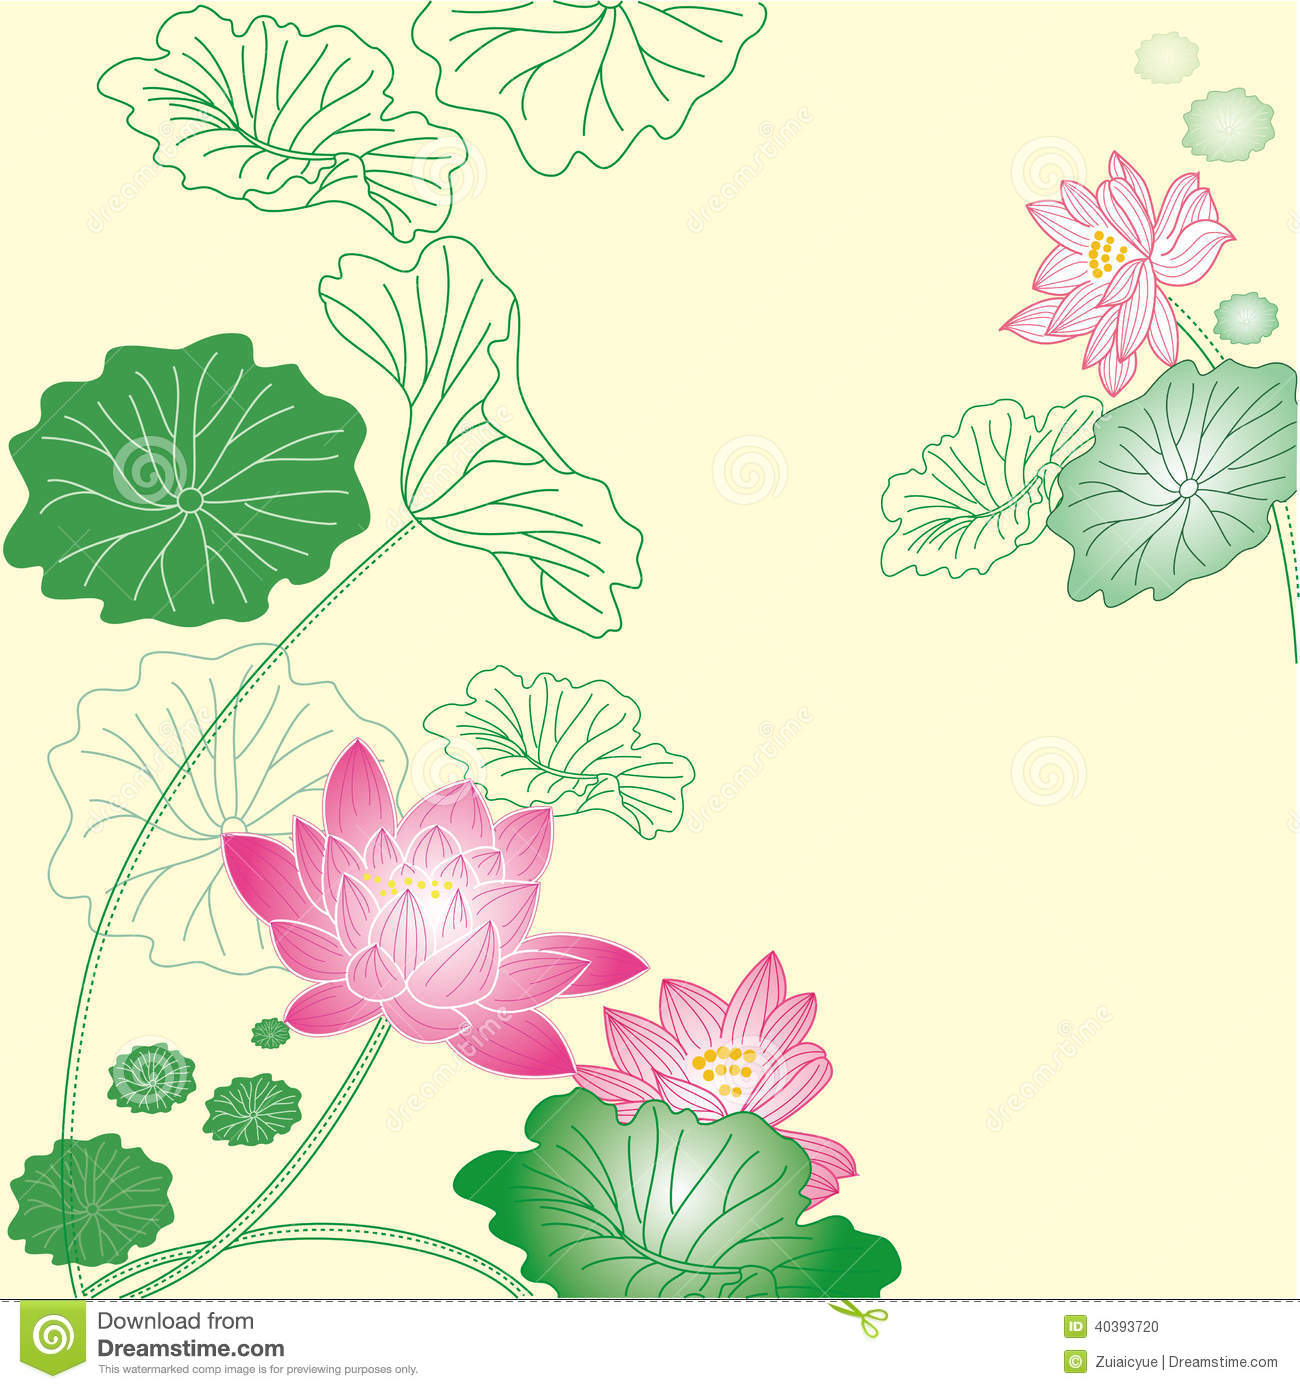 Lotus flower background stock vector illustration of elegant 40393720 lotus flower background izmirmasajfo